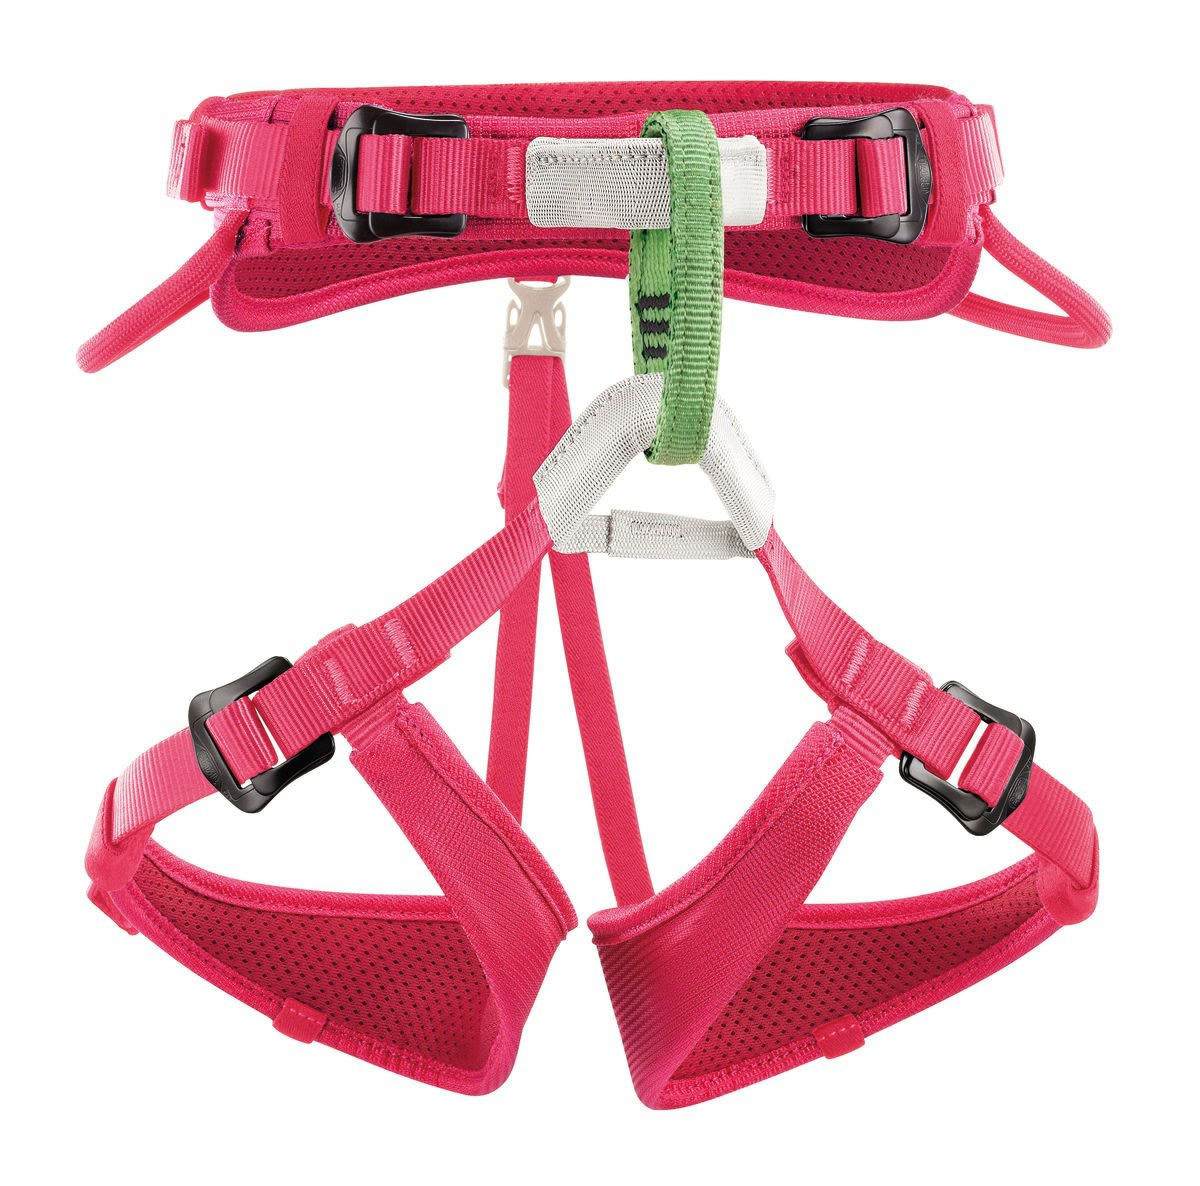 Petzl Macchu (Modell Winter 2018) Rot, One Size -Farbe Himbeerrot, One Size